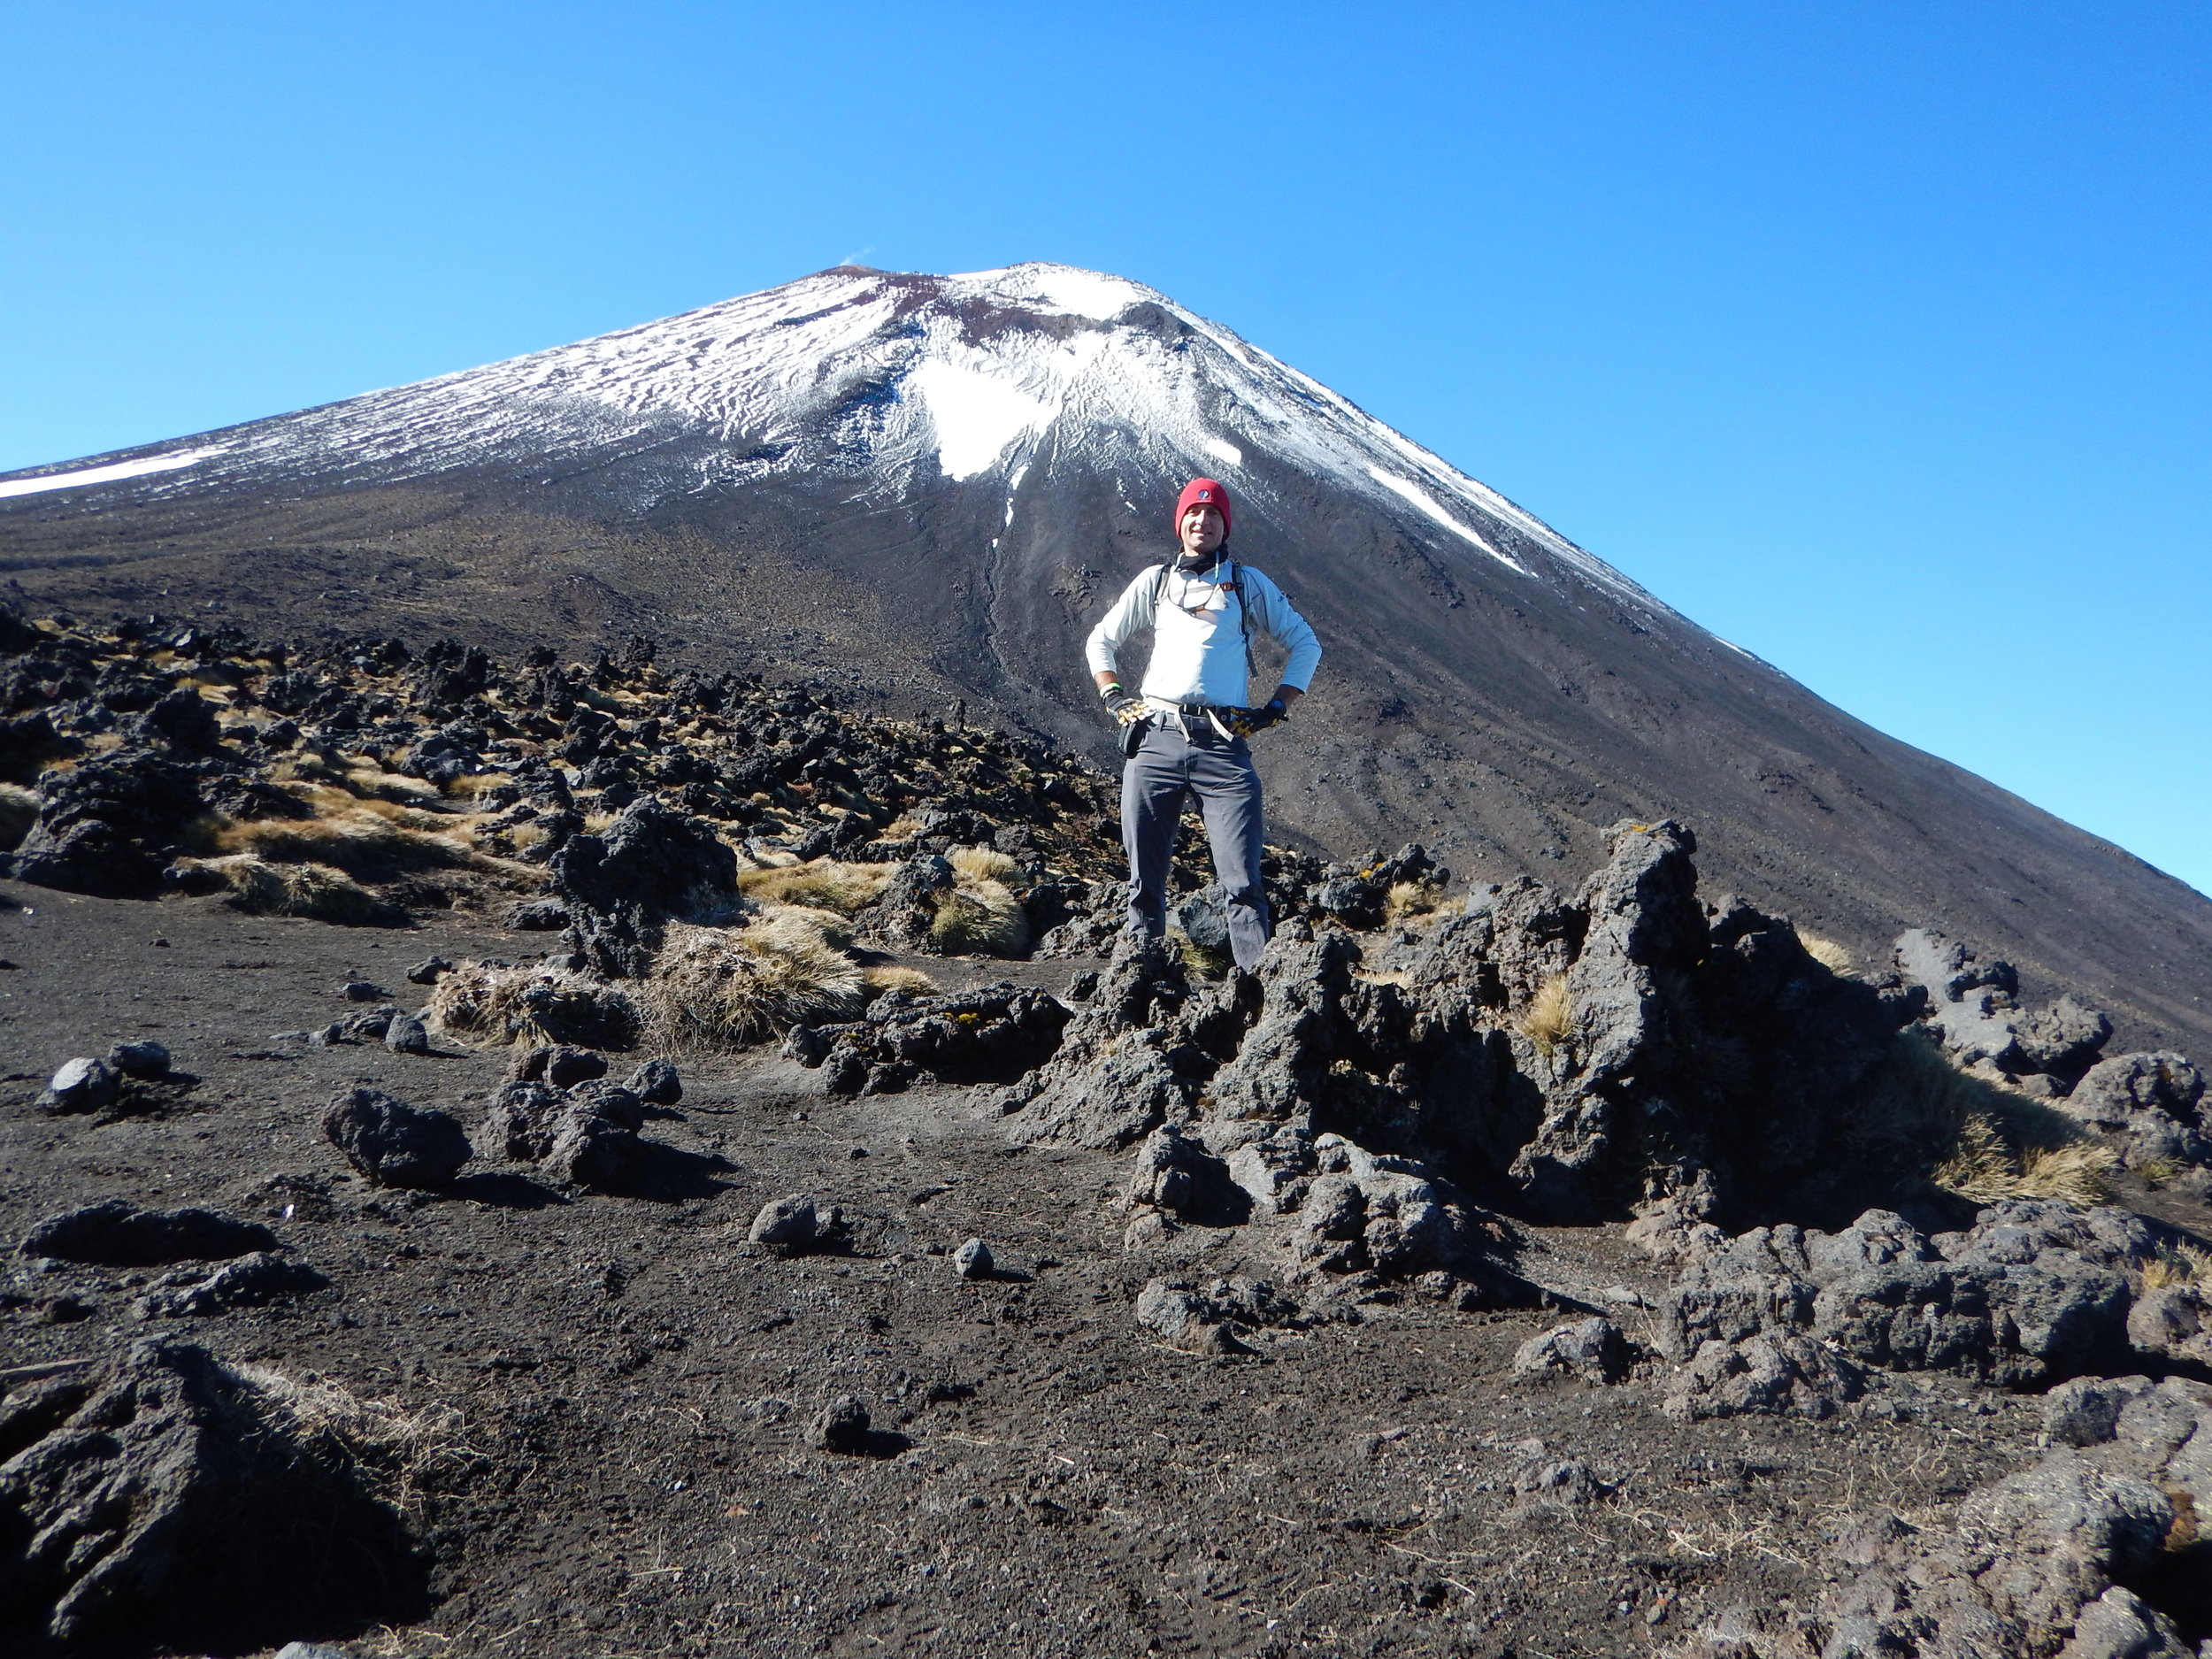 In front of Mt. Ngauruhoe (Mt. Doom). Wish I had planned for the extra two-hours to make the ascent! (An optional portion of the Tongariro Alpine Crossing.)